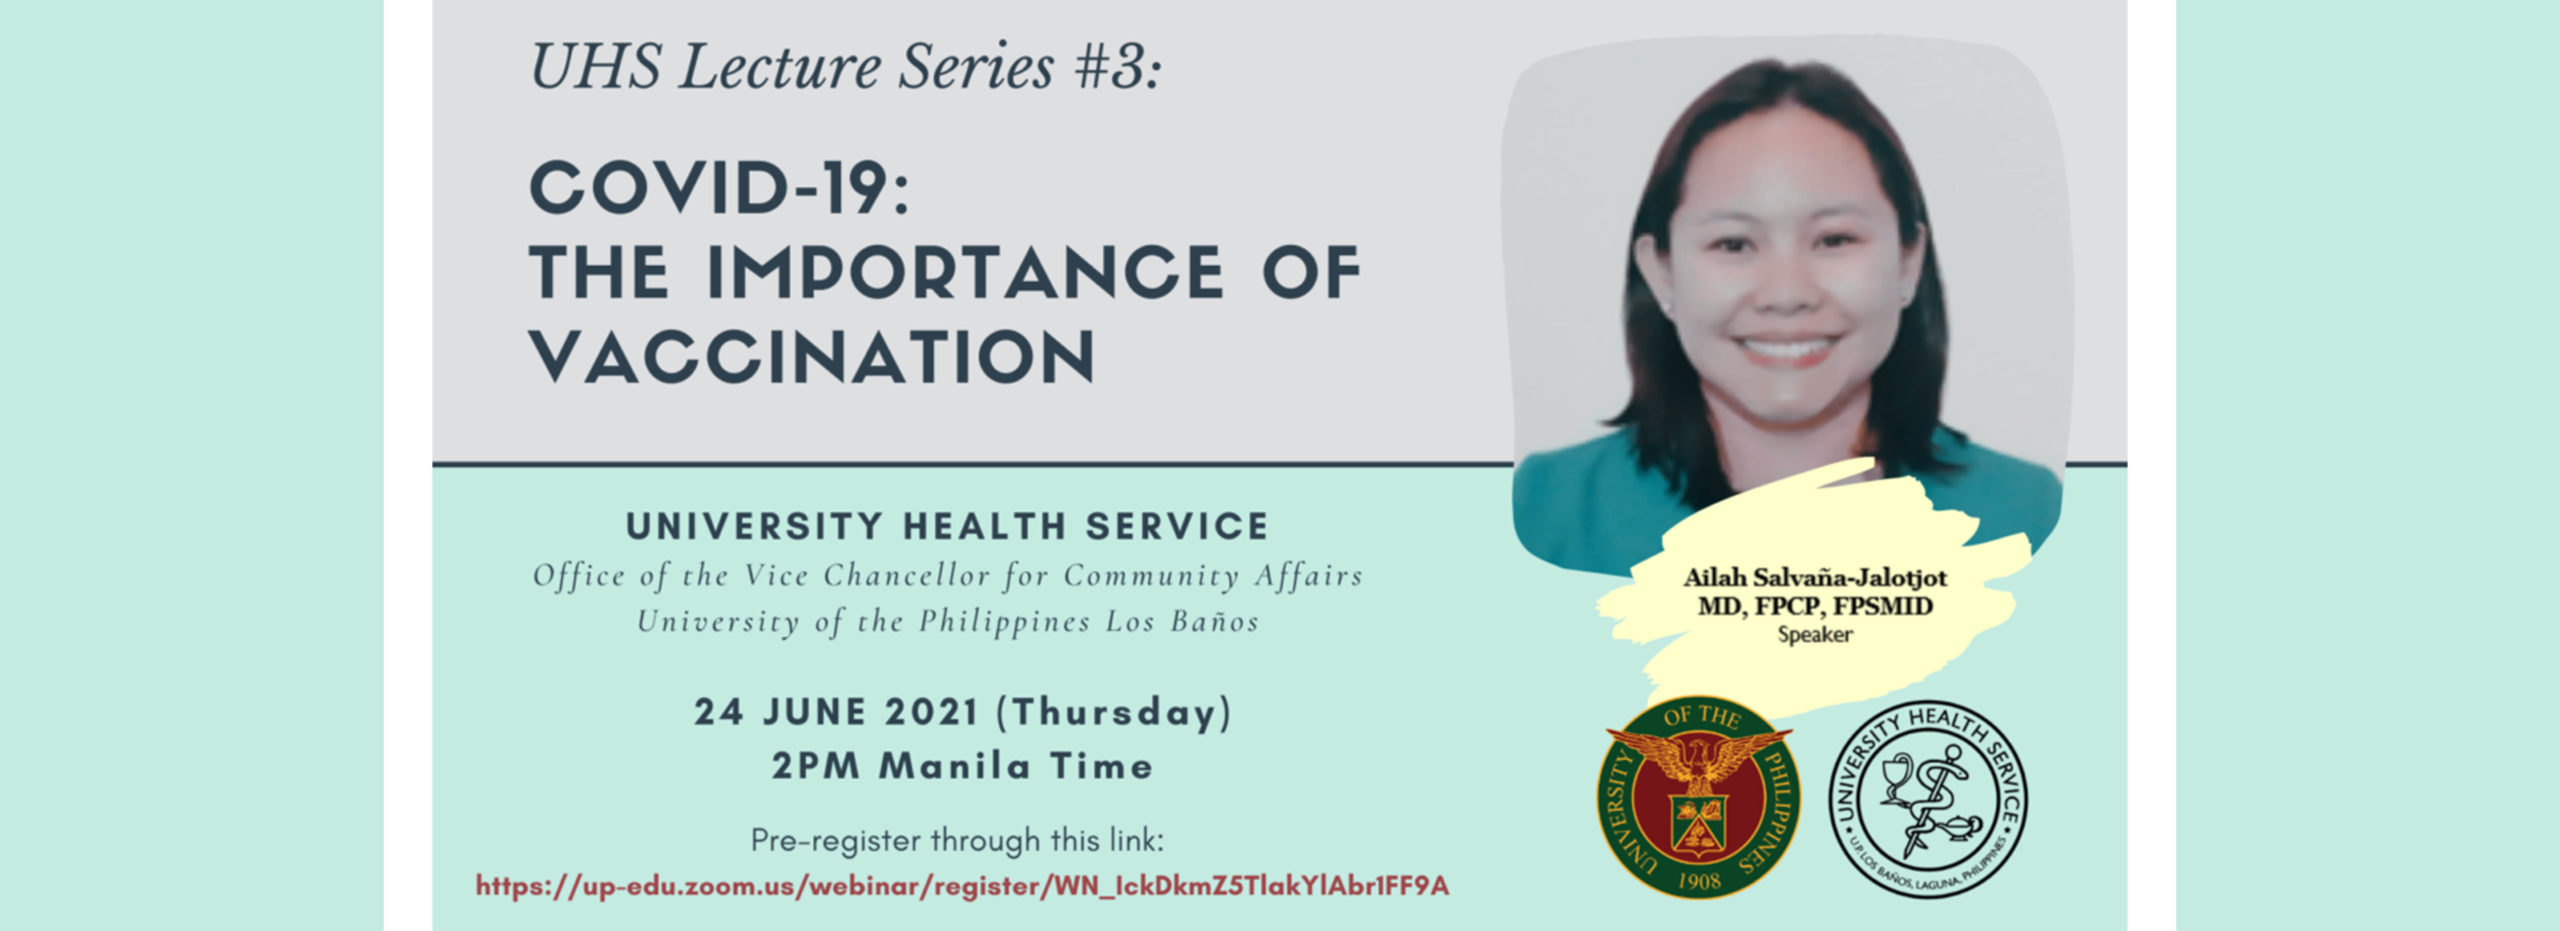 UHS Lecture Series #3 presents COVID-19: The importance of vaccination